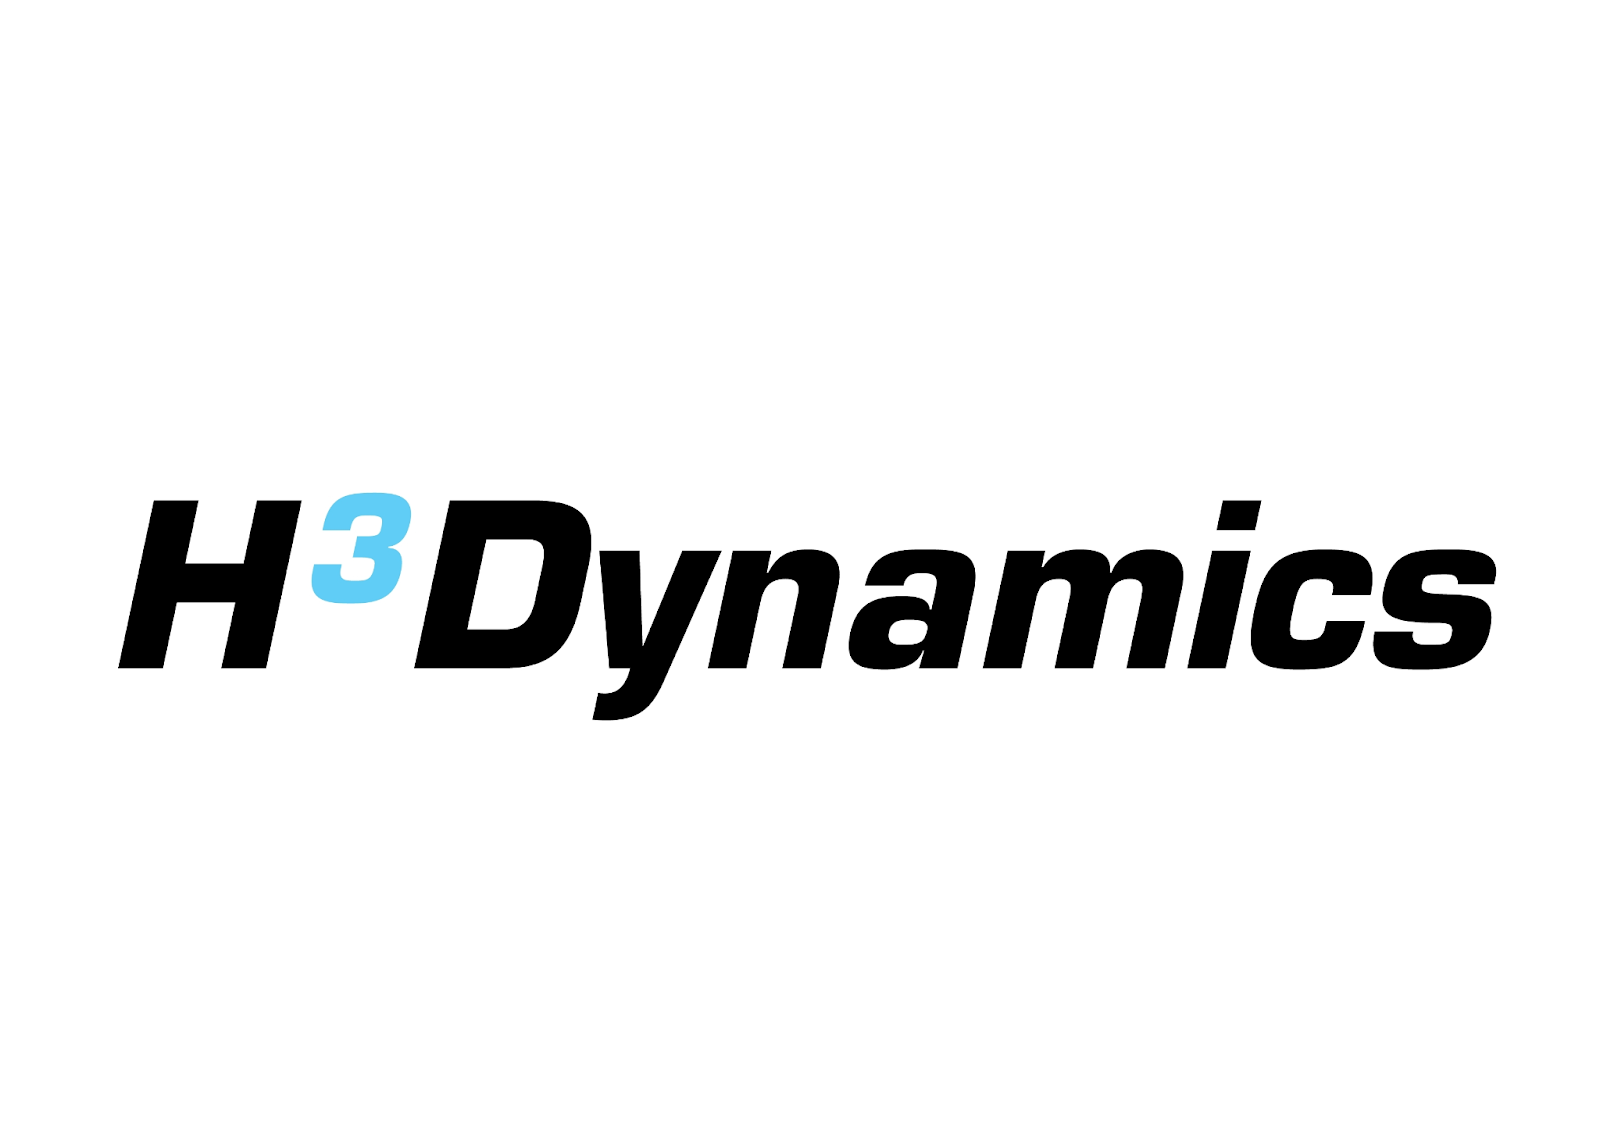 H3 Dynamics is among best technology companies in Singapore